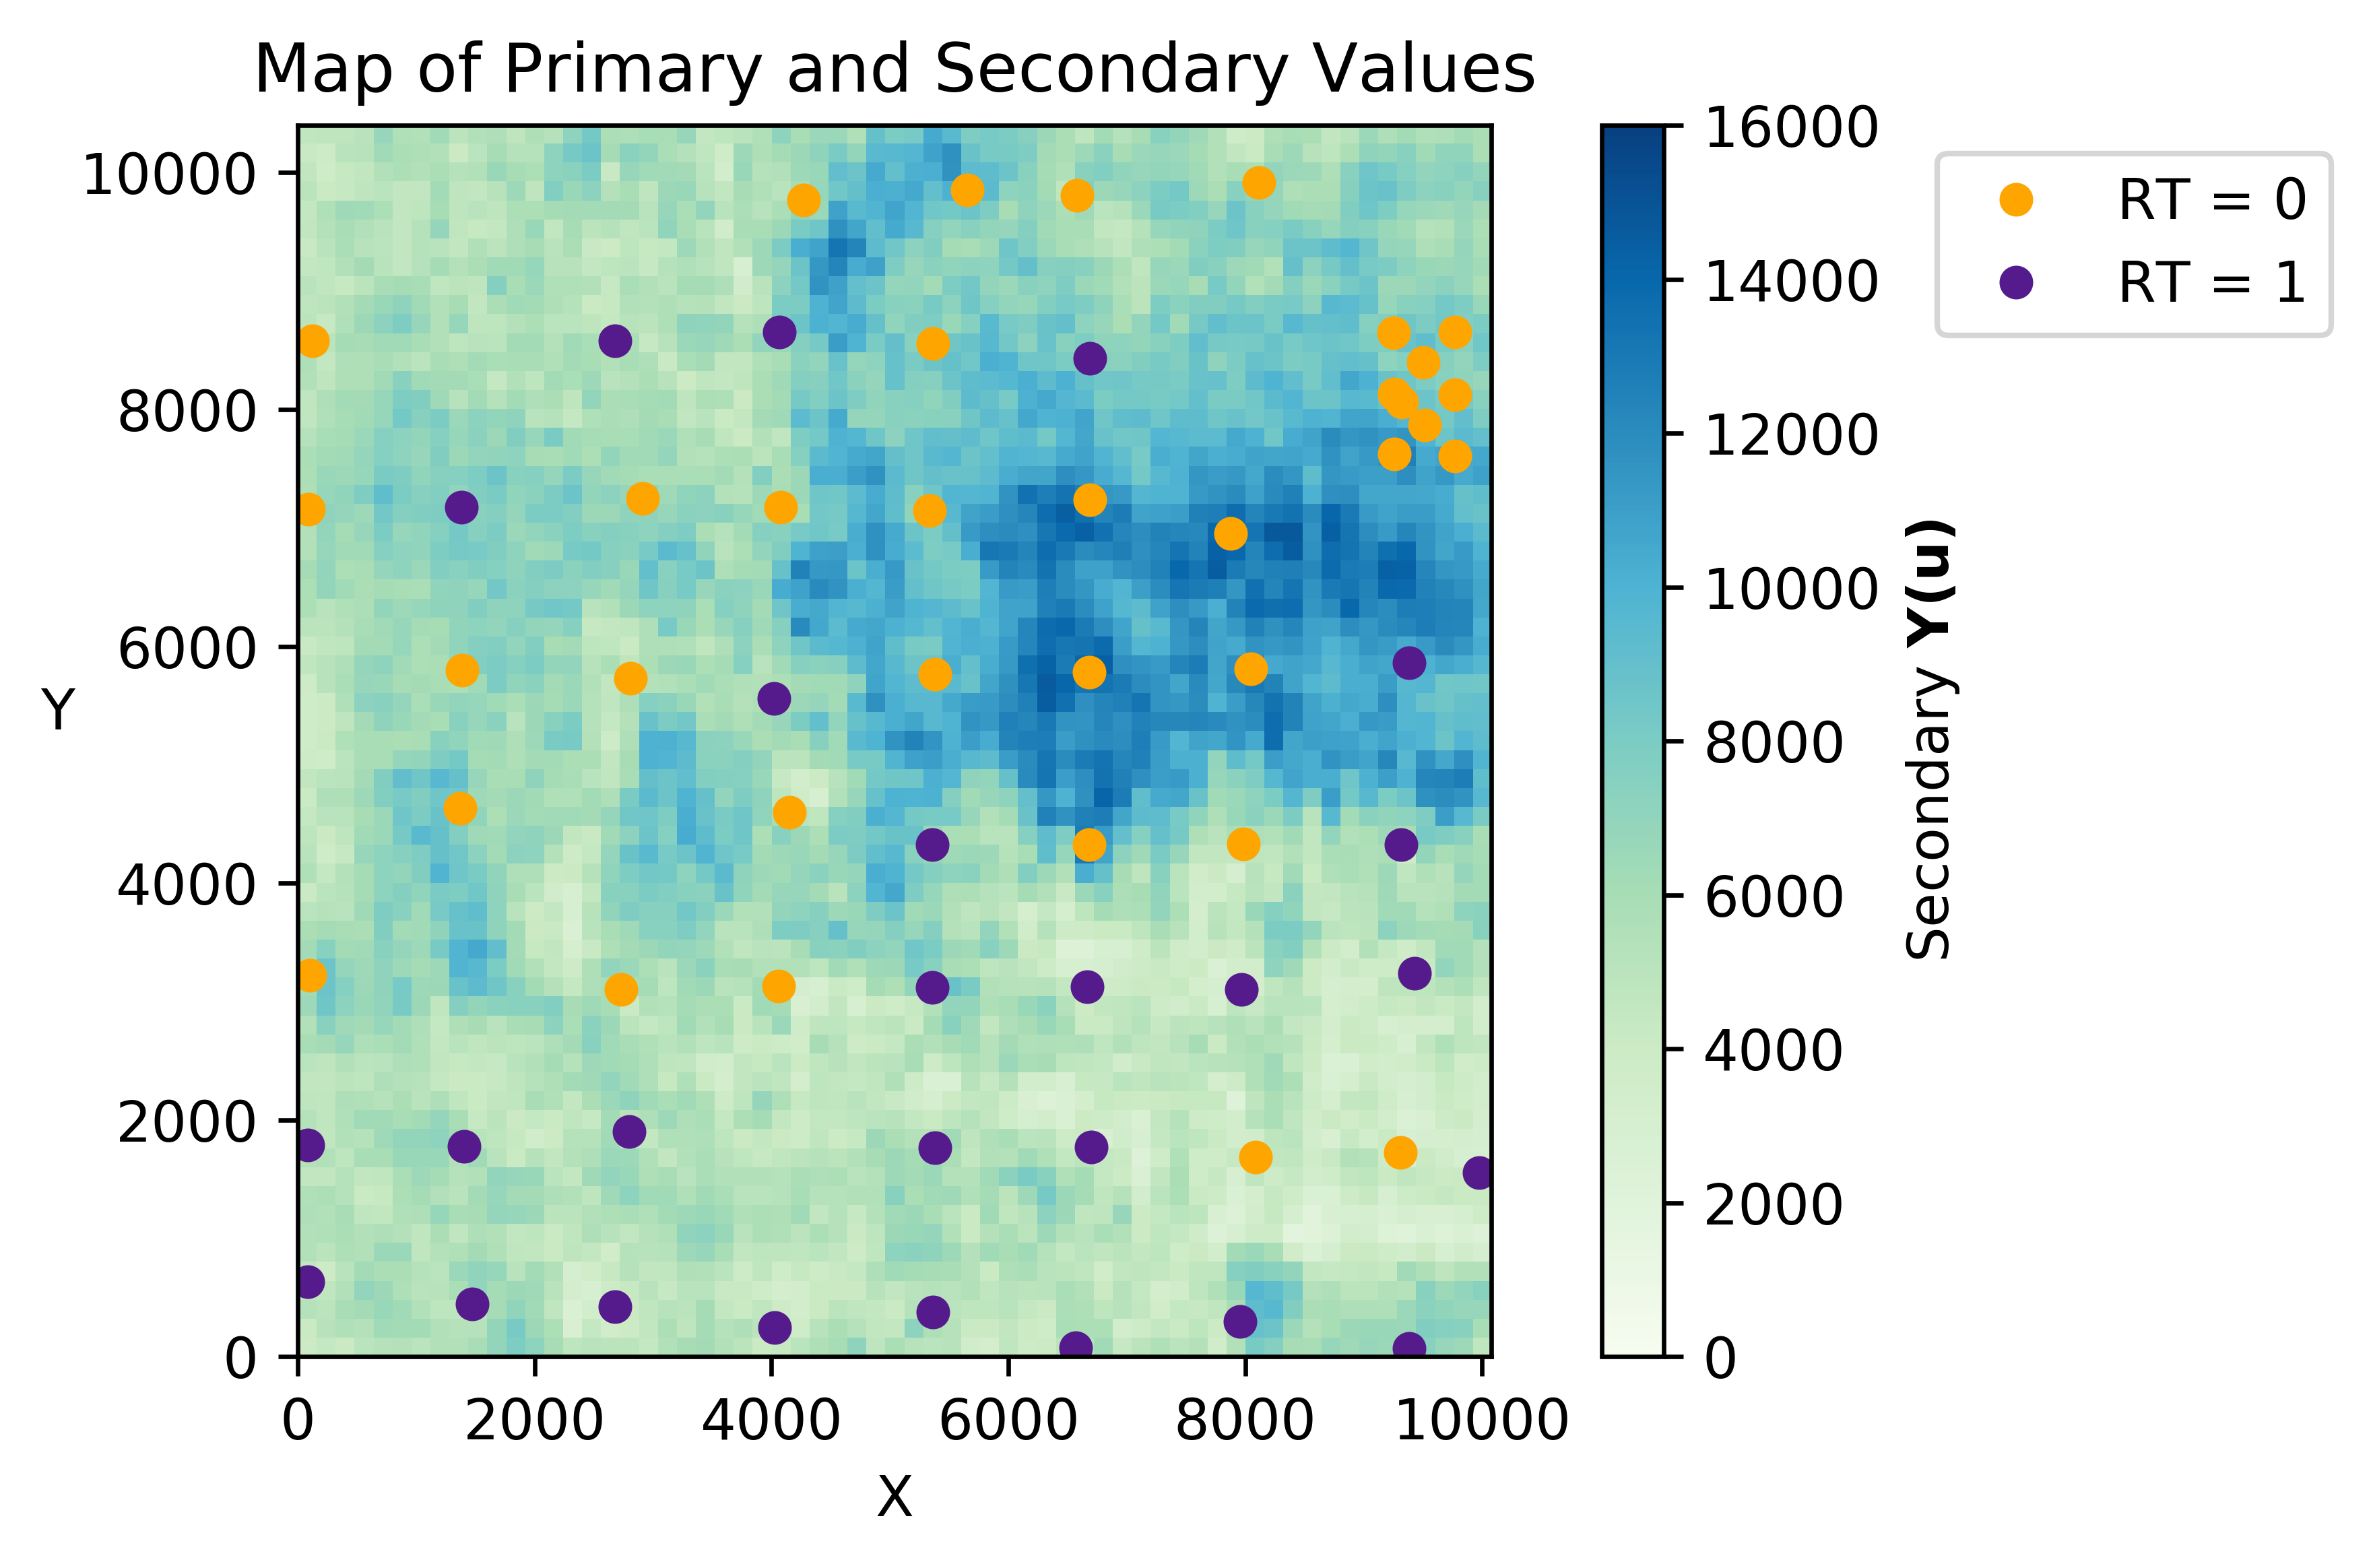 Heat map of a secondary data plus some direct observations of A (RT=0) and not-A (RT=1).